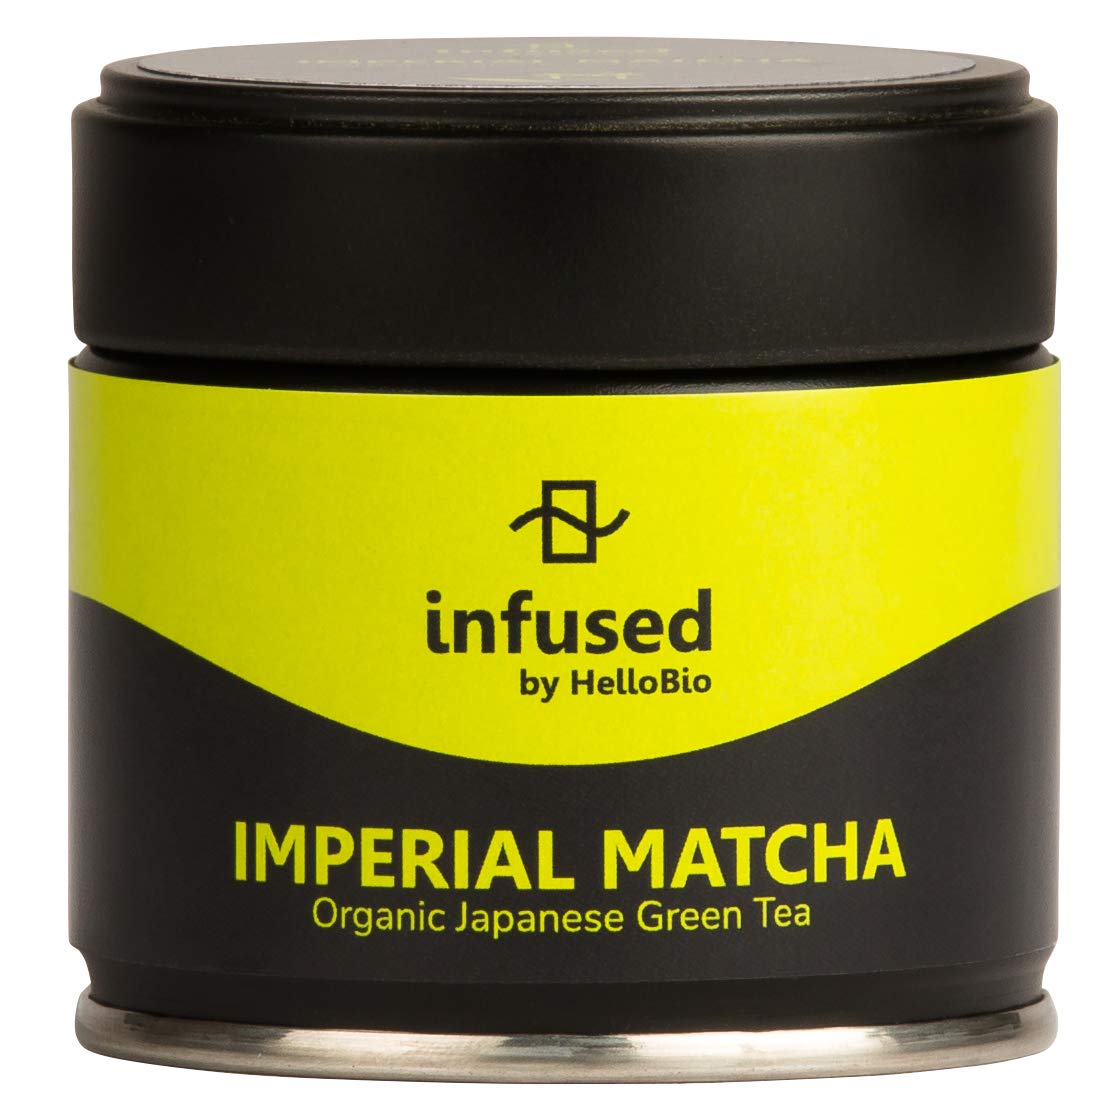 Imperial Max 54% OFF Matcha Infused by HelloBio Organic USDA Houston Mall Ma Ceremonial